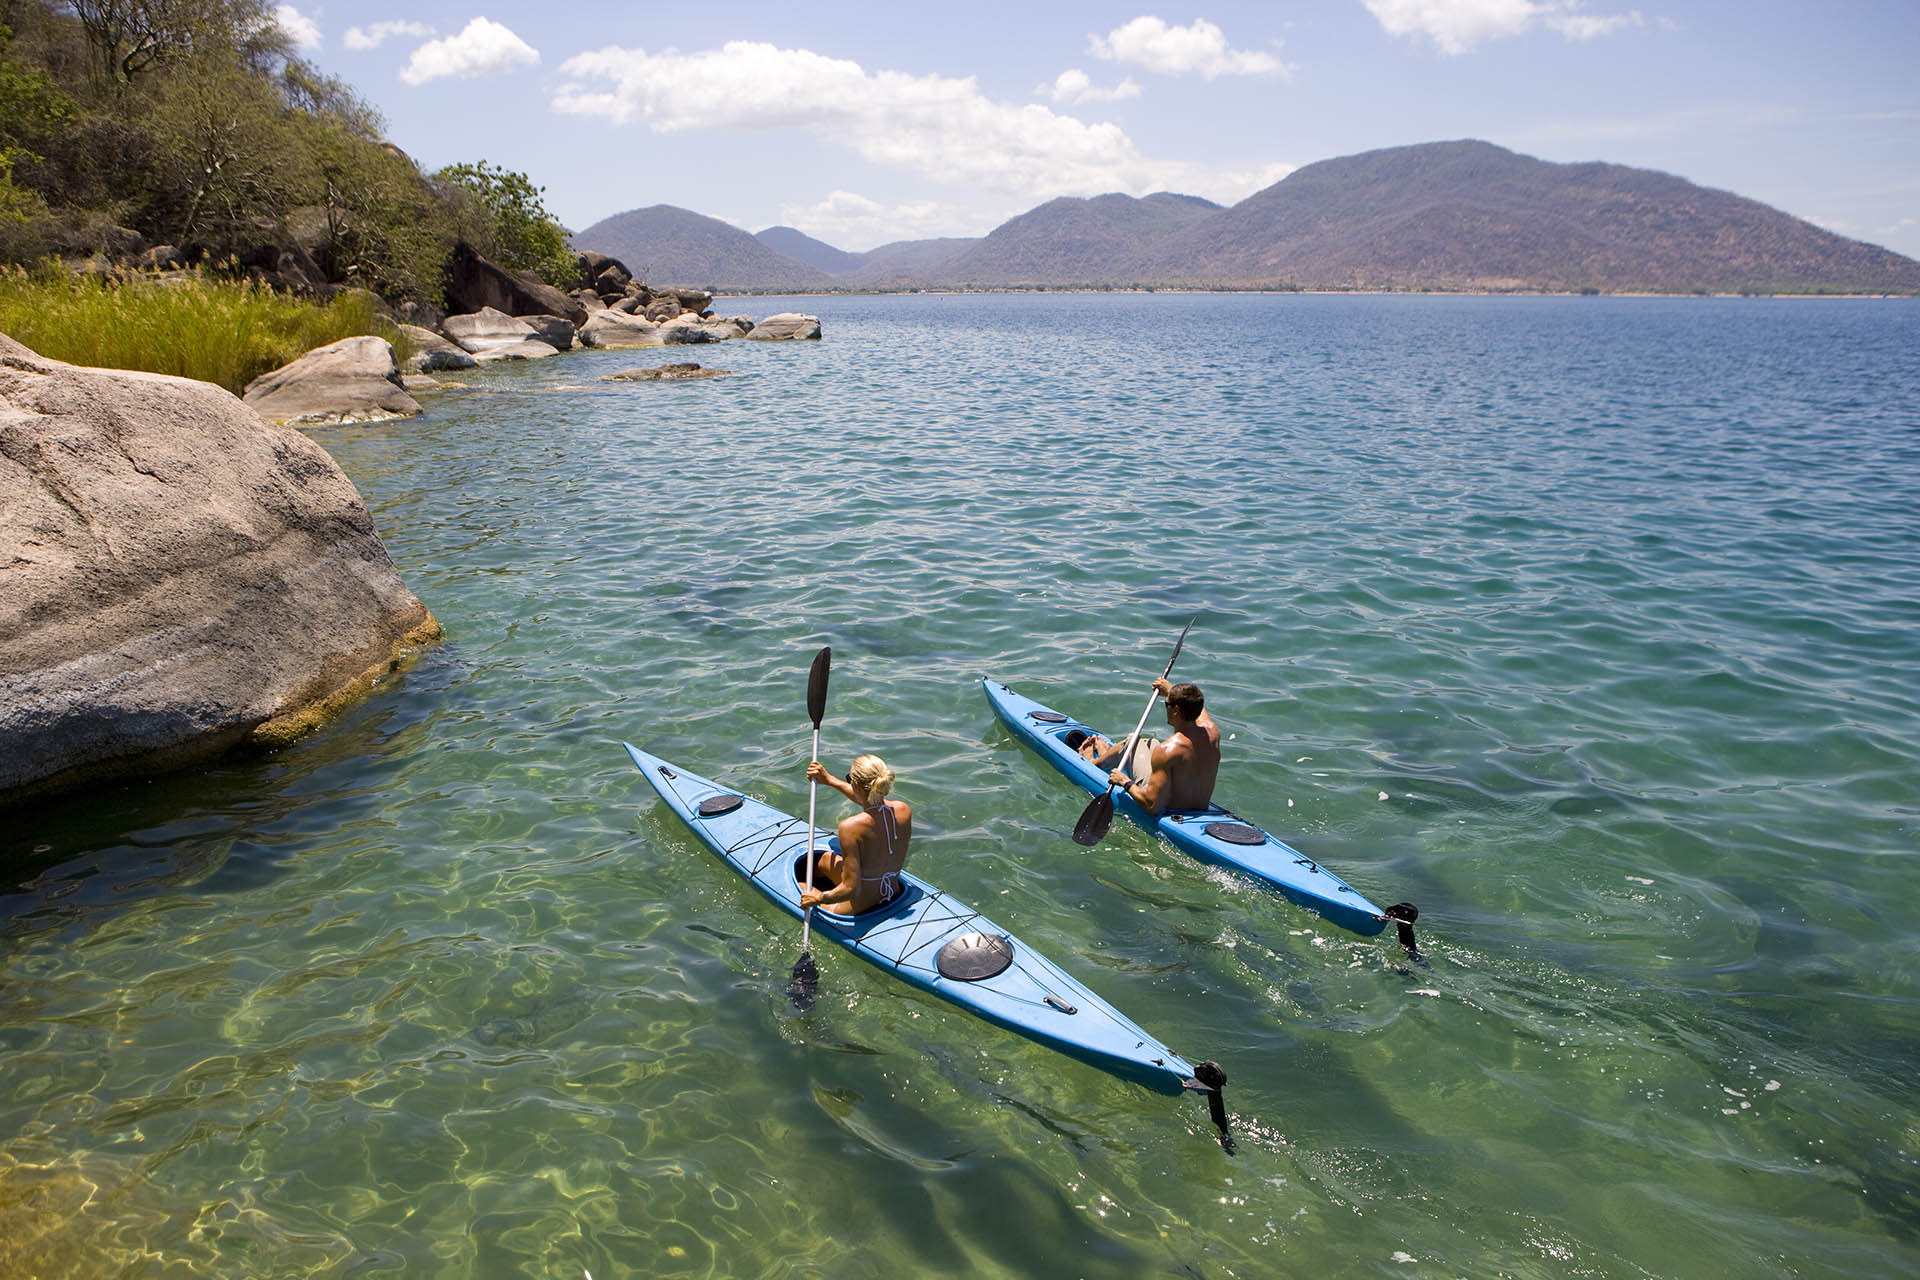 cape maclear tours-malawi-points-of-interest-malawian-style-malawi-adventures-experiences-specialist-tour-operator-lake-malawi-kayaking